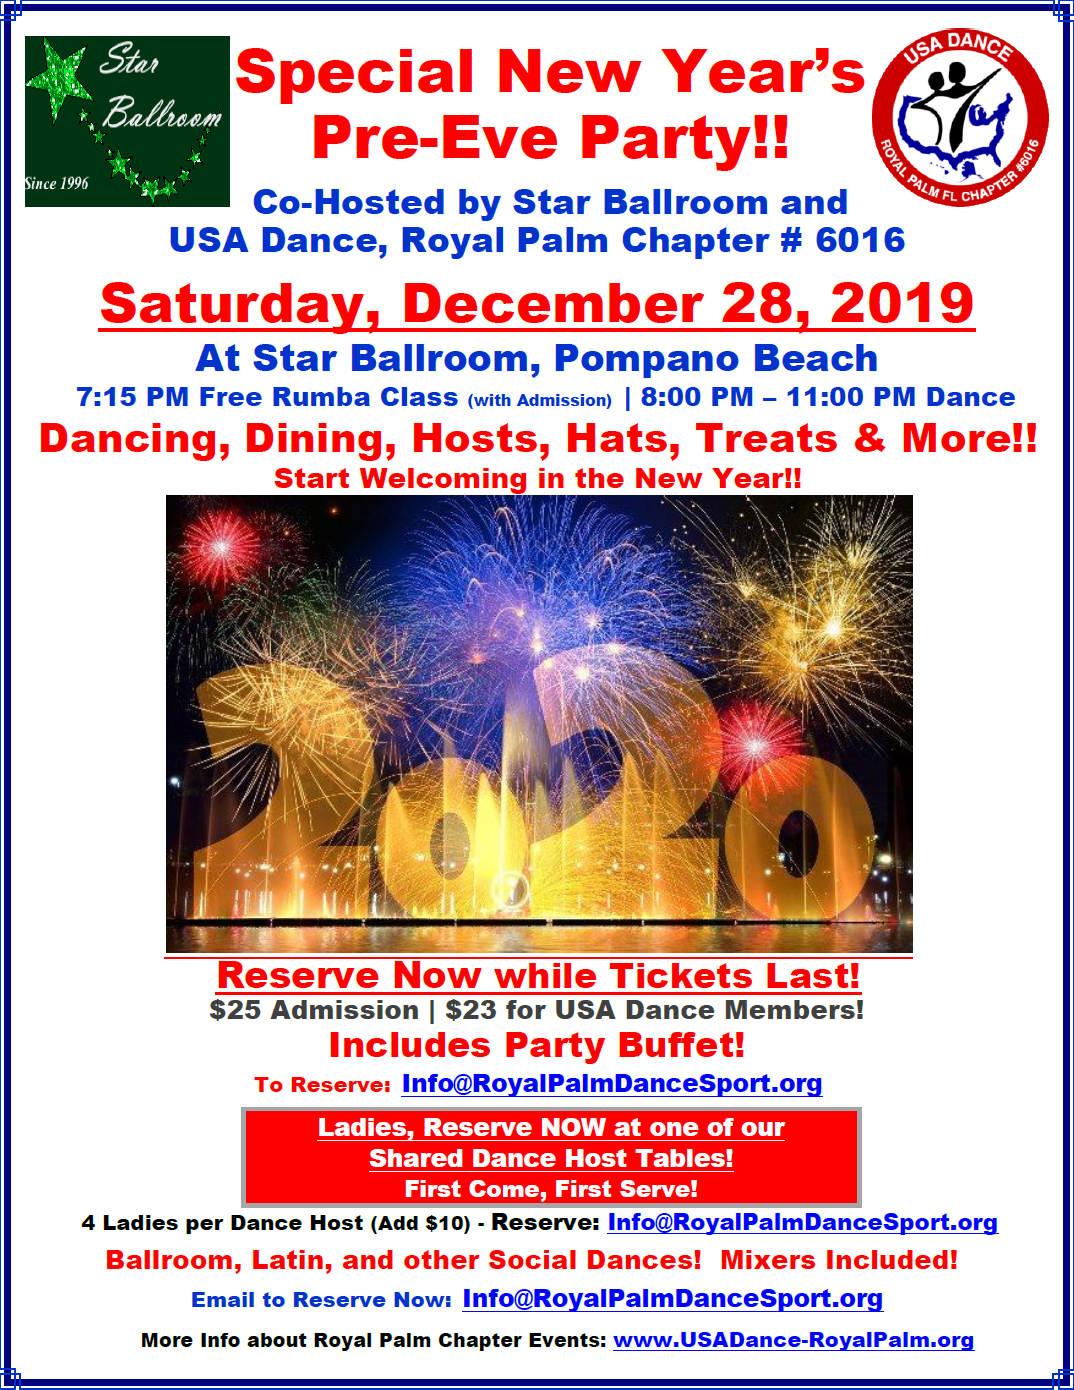 Special New Year's Pre-Eve Party - Saturday, December 28, 2019 at Star Ballroom